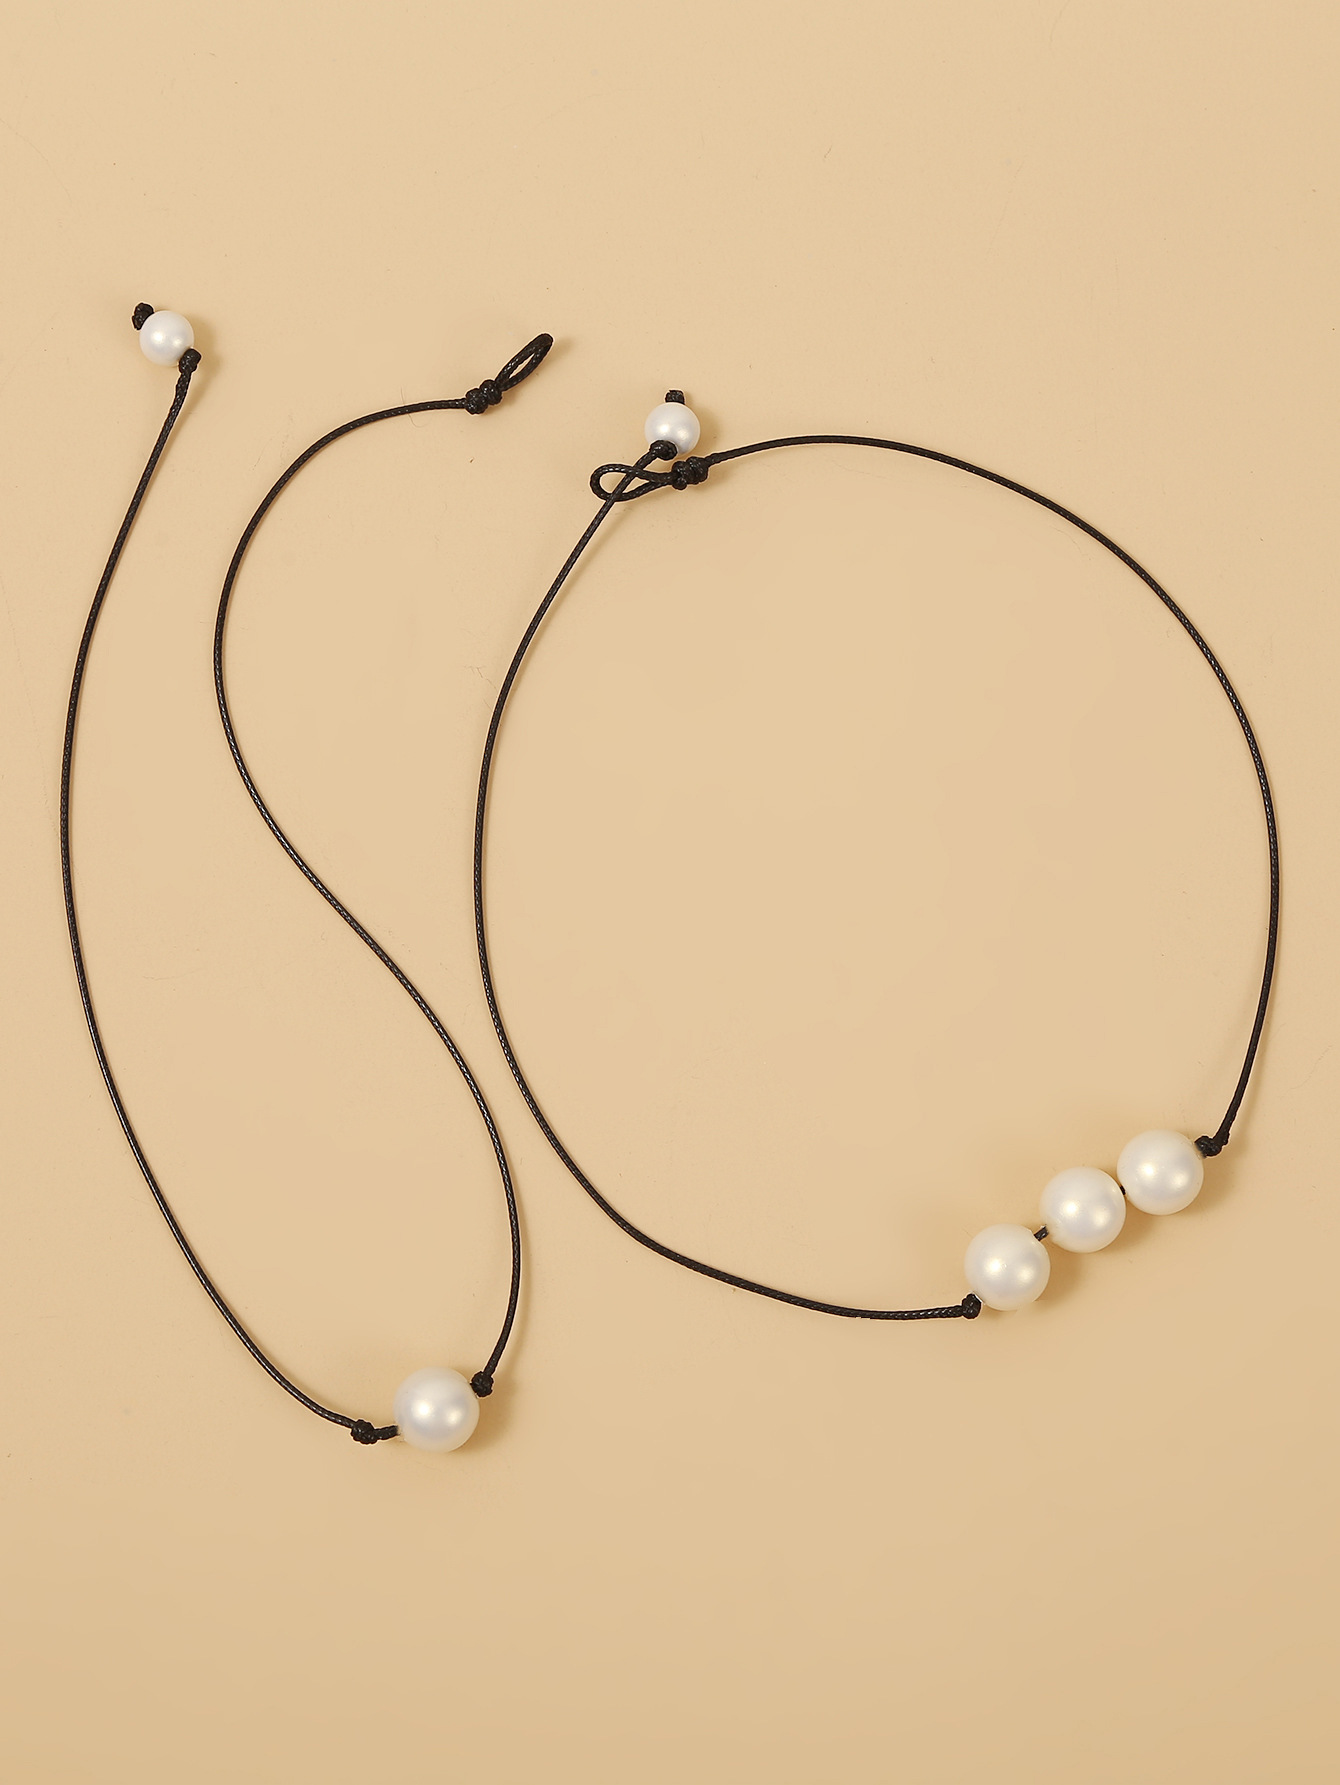 fashion jewelry new accessories pearl wax rope two-piece short necklace wholesale nihaojewelry  NHJJ225342